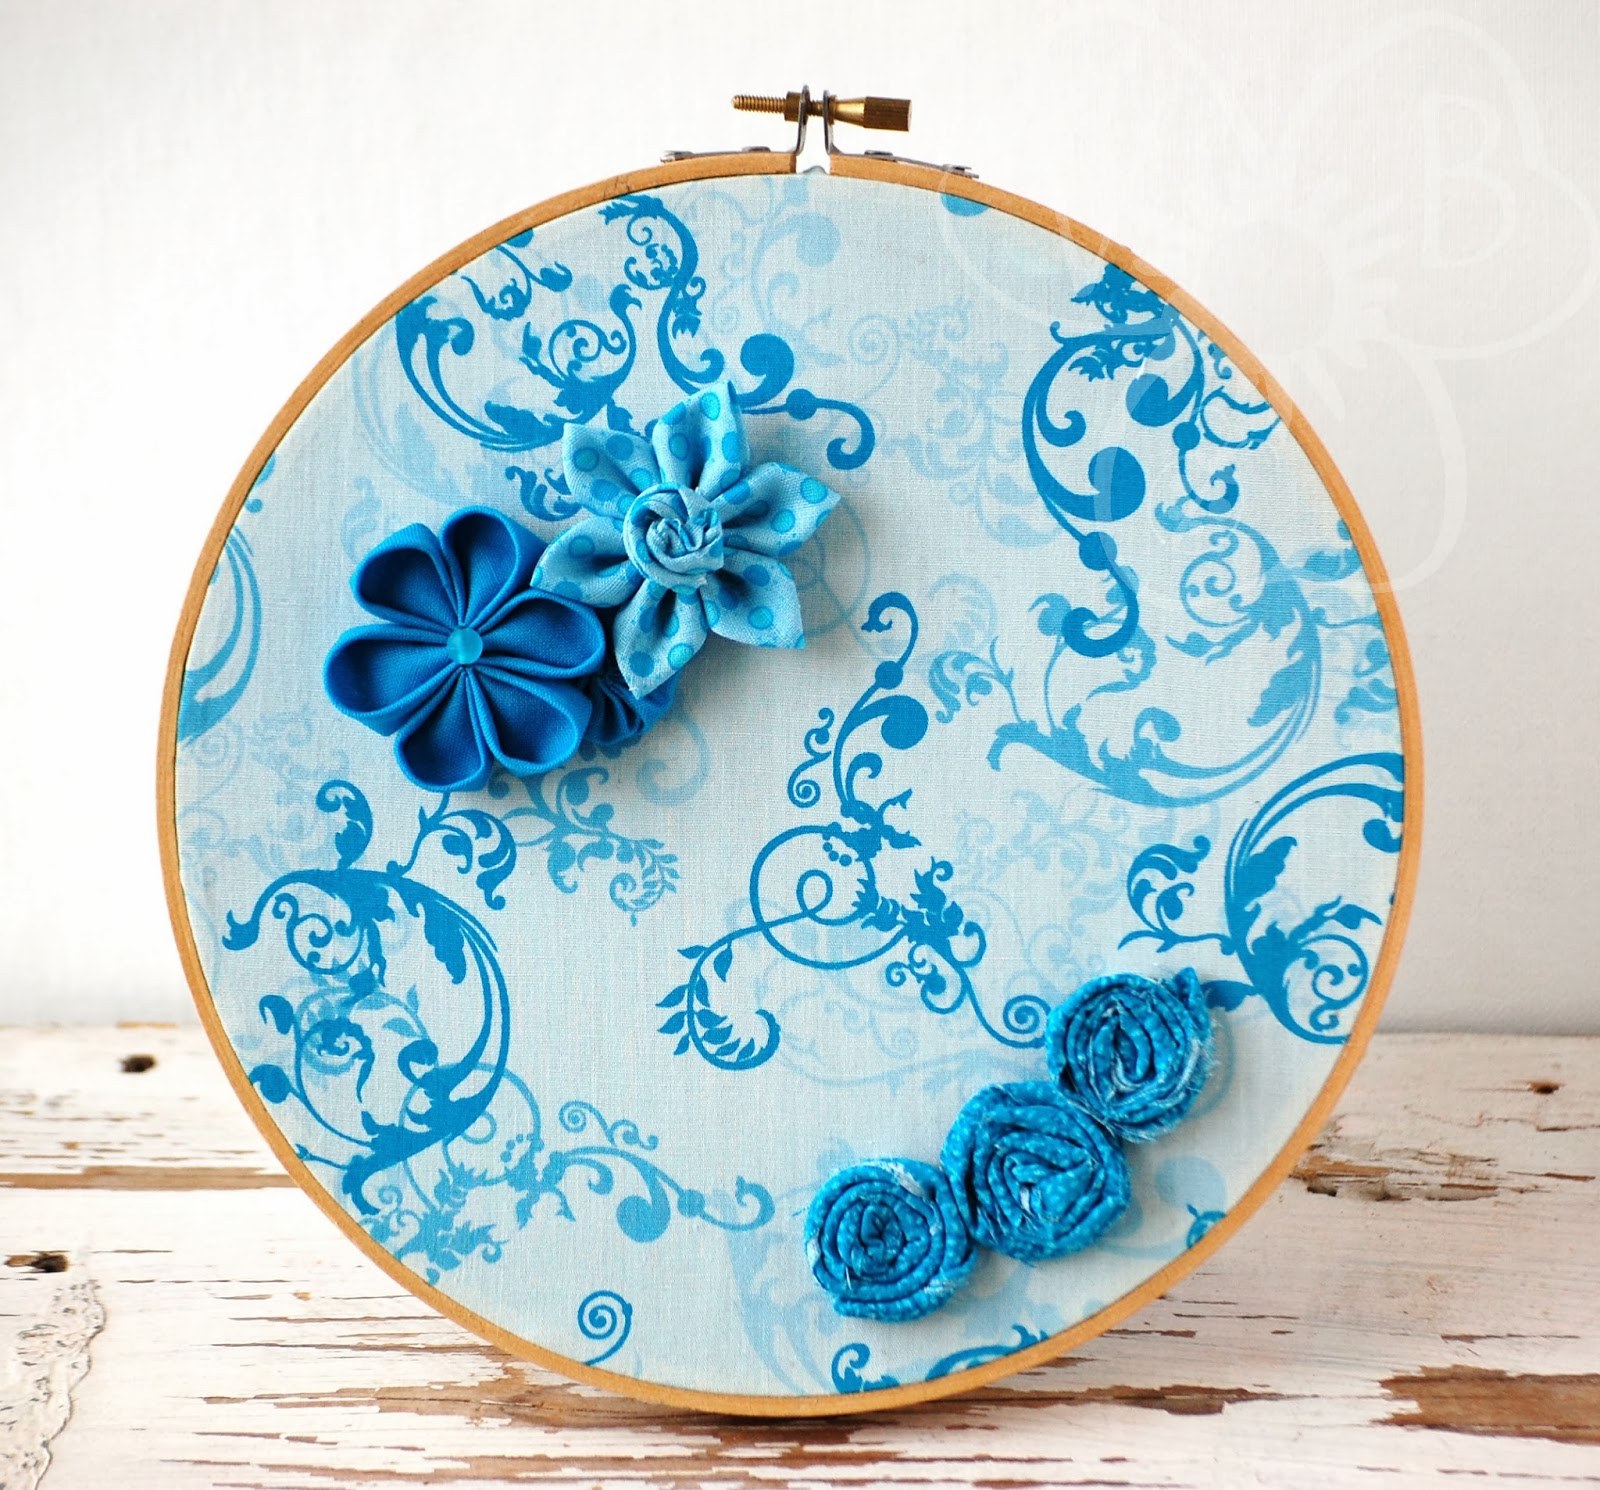 http://violetsbuds.storenvy.com/collections/500953-hoop-art/products/4643002-ocean-blues-handmade-flower-hoop-art